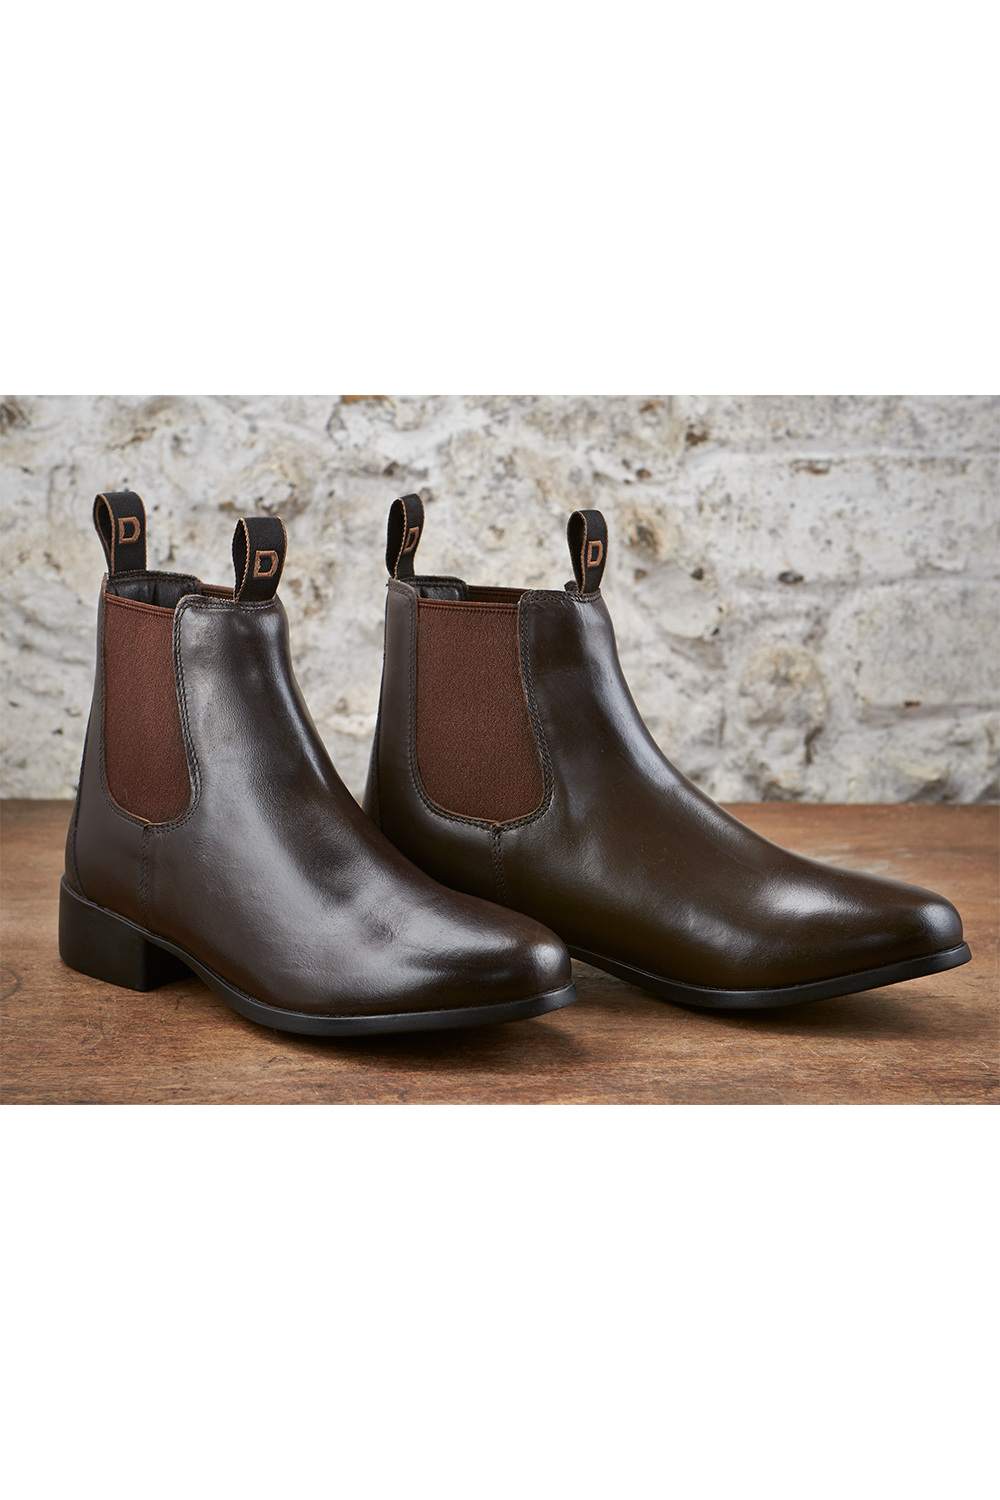 Childs Foundation Jodphur Boots brown